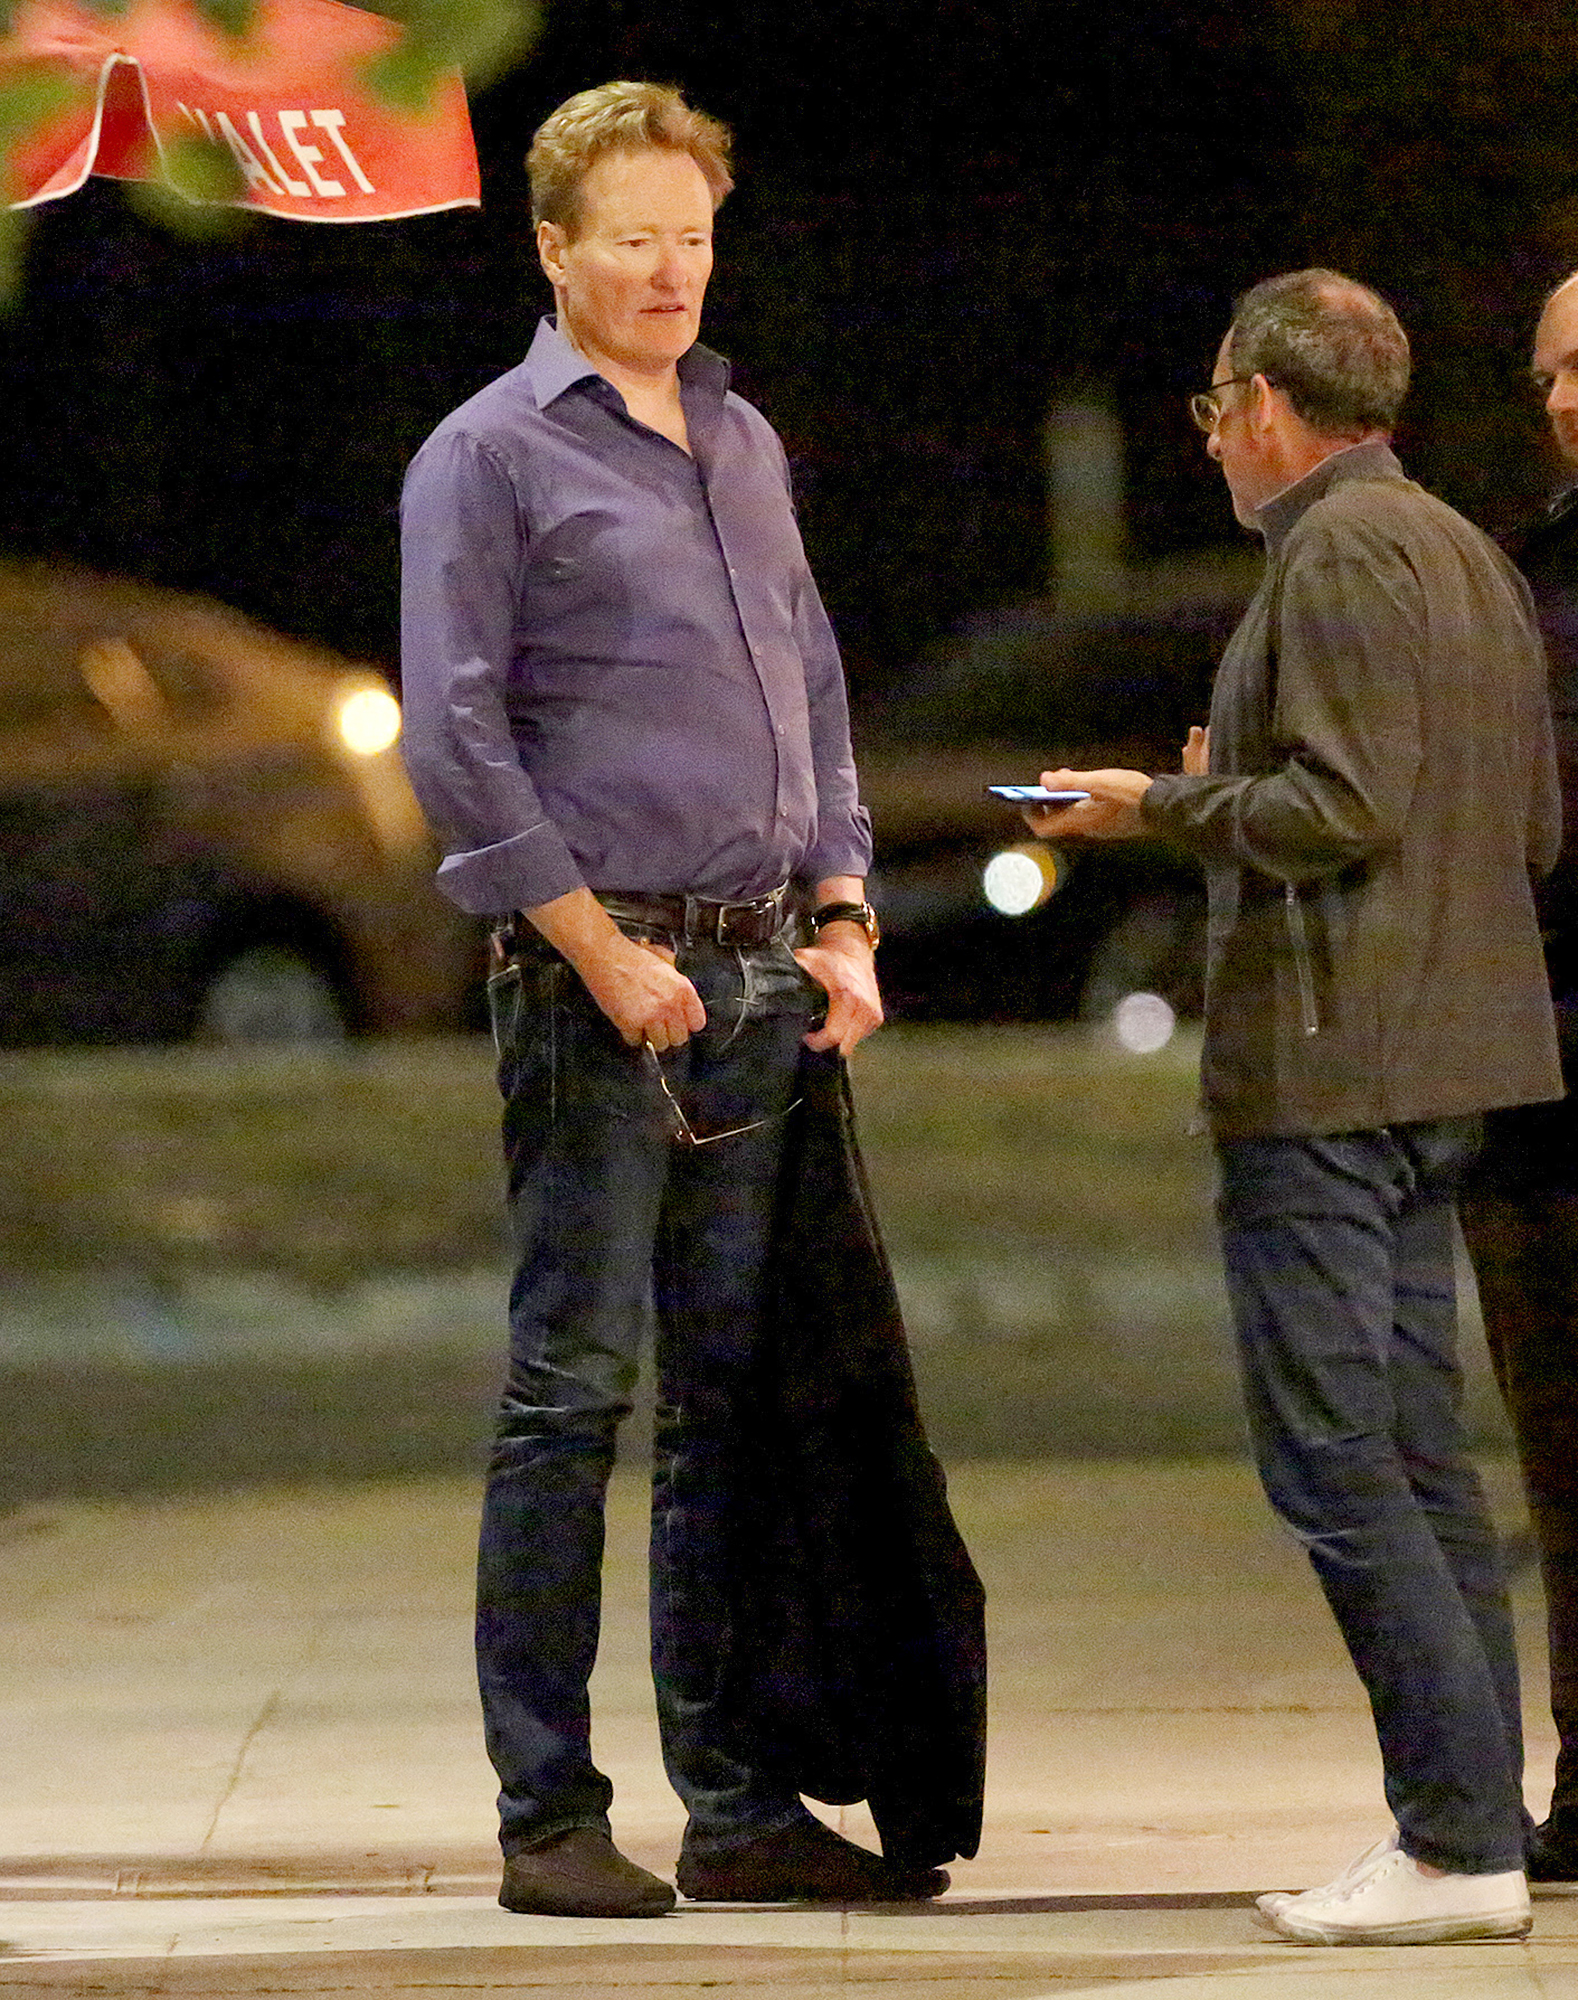 EXCLUSIVE: Conan O'Brien is Spotted Leaving an Italian Restaurant in Brentwood, California.